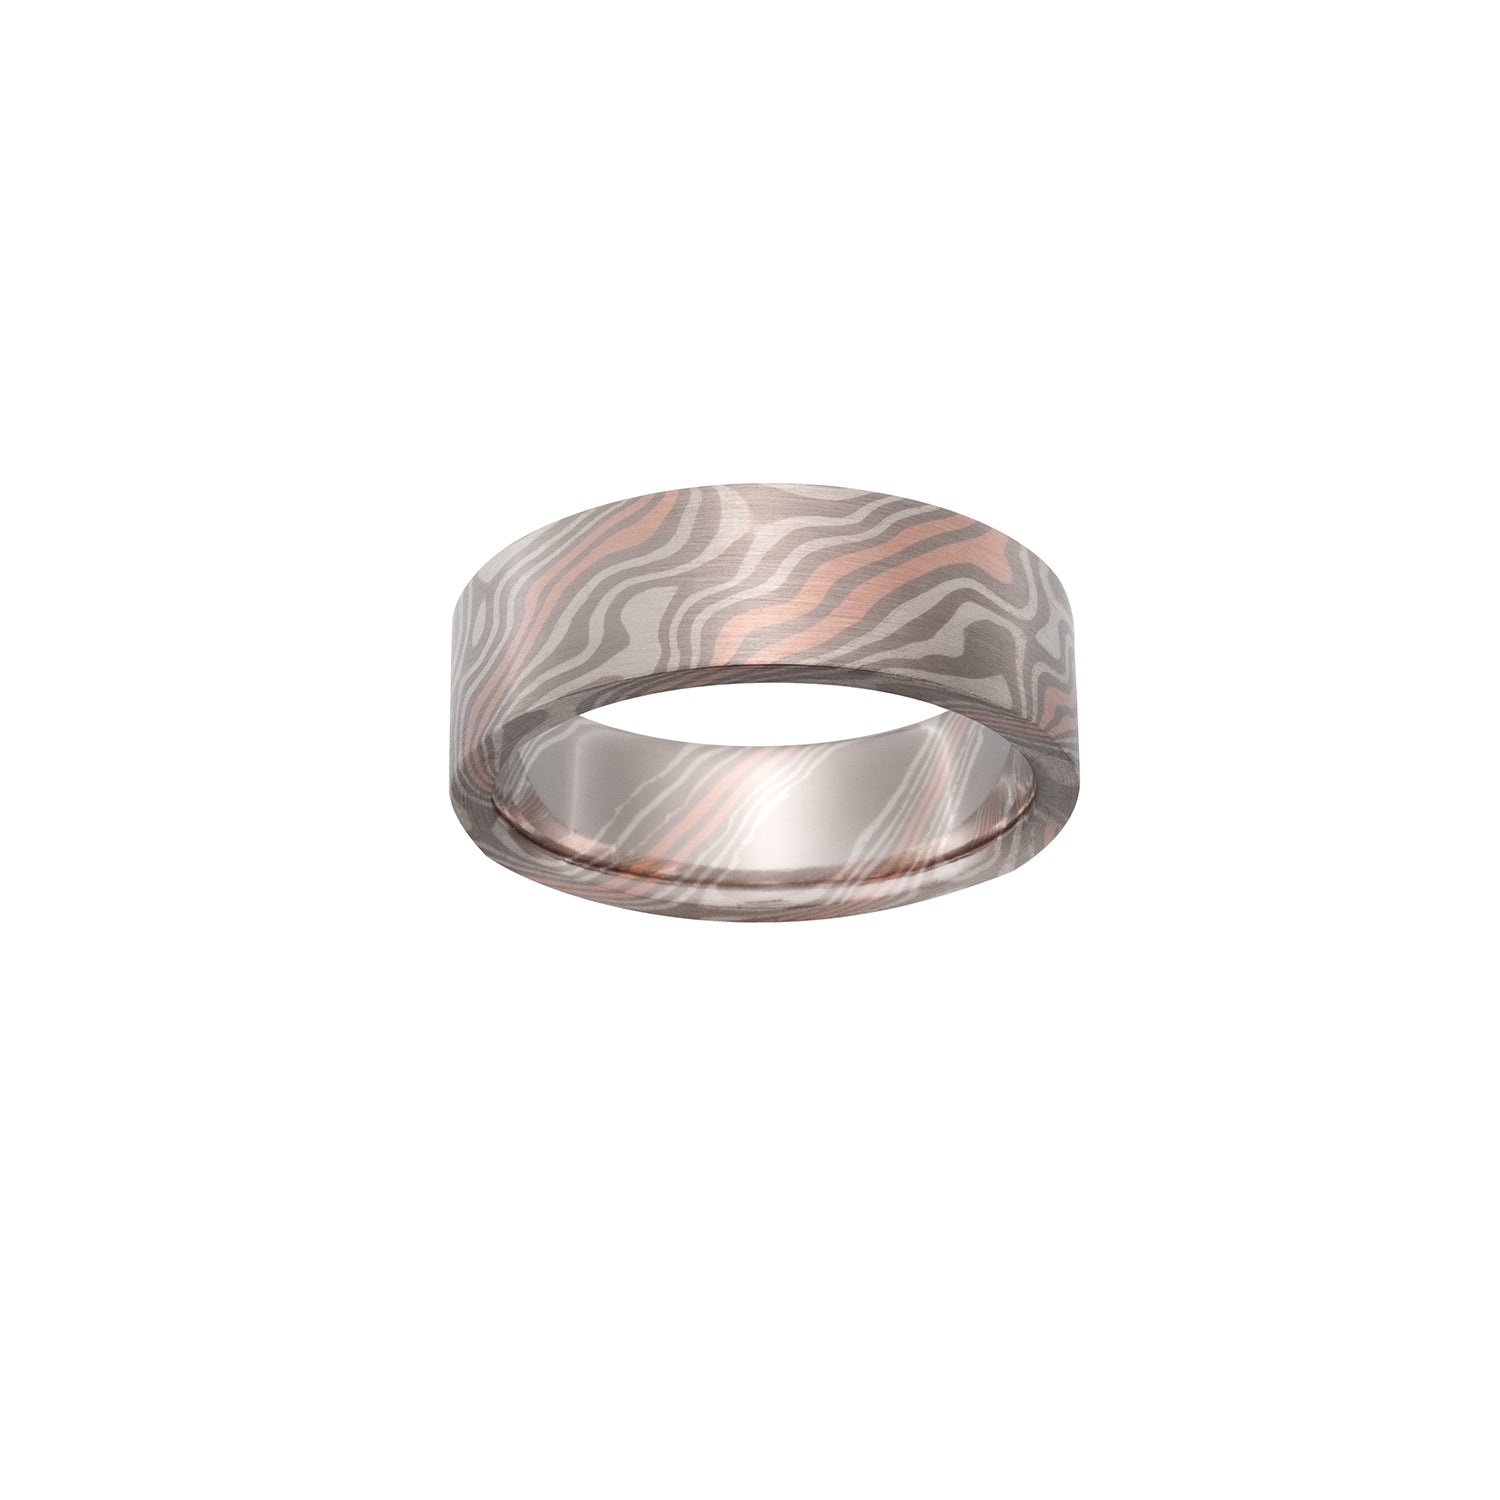 Beech Mokume Ring by Chris Ploof - 14k Red Gold - Talisman Collection Fine Jewelers